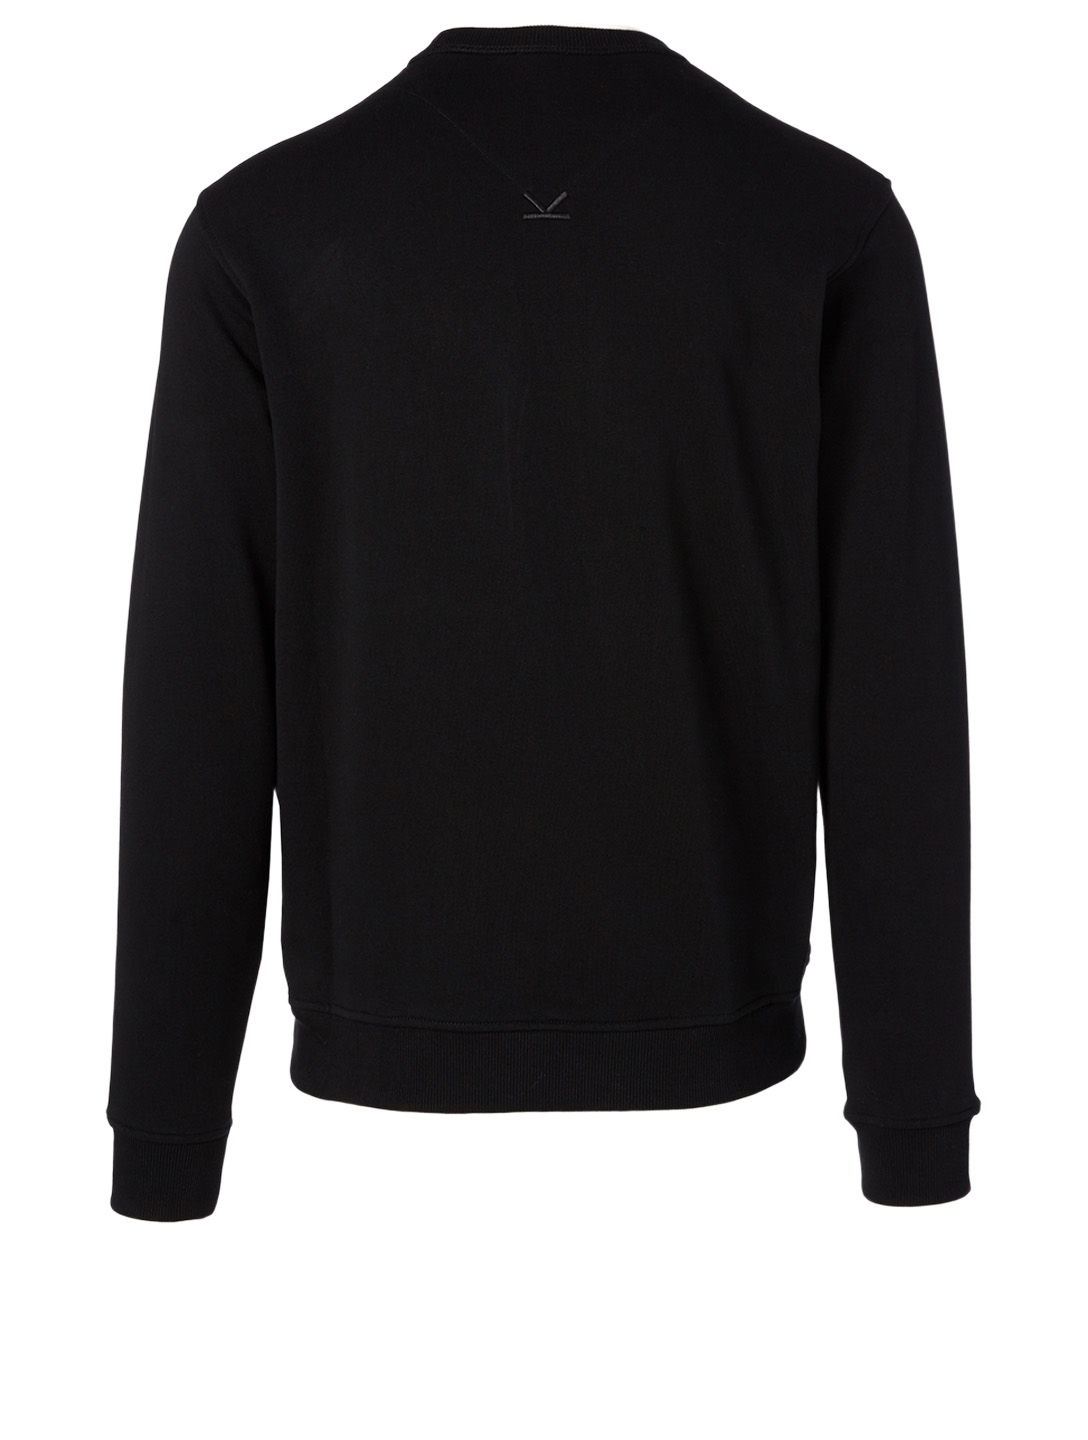 KENZO Cotton Logo Sweatshirt Men's Black